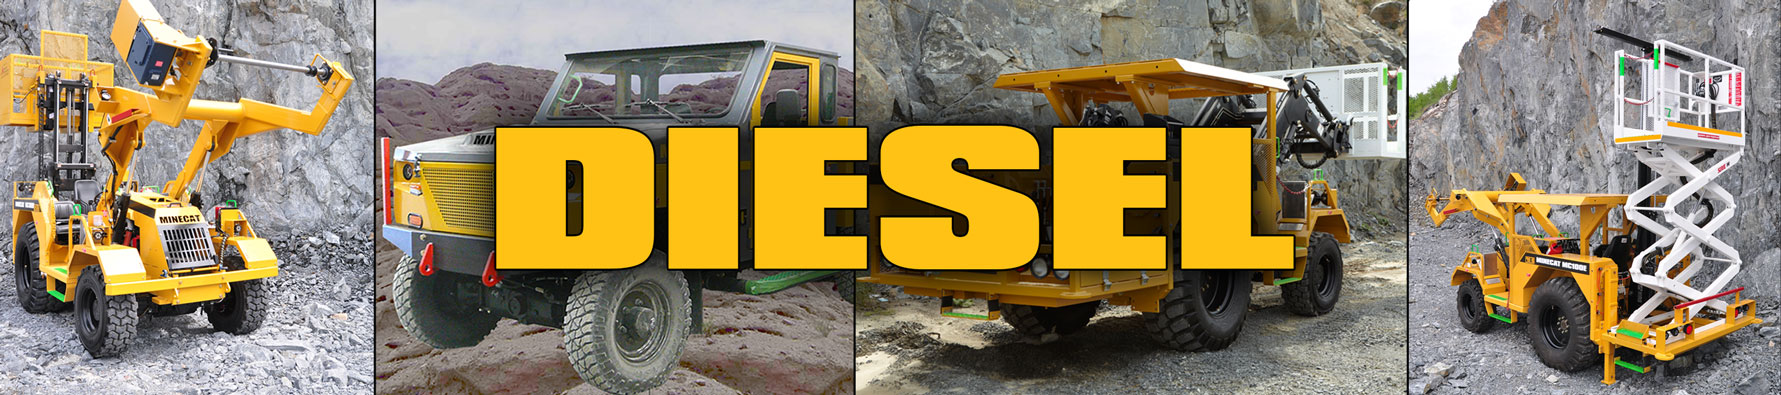 MINECAT Diesel Products Banner